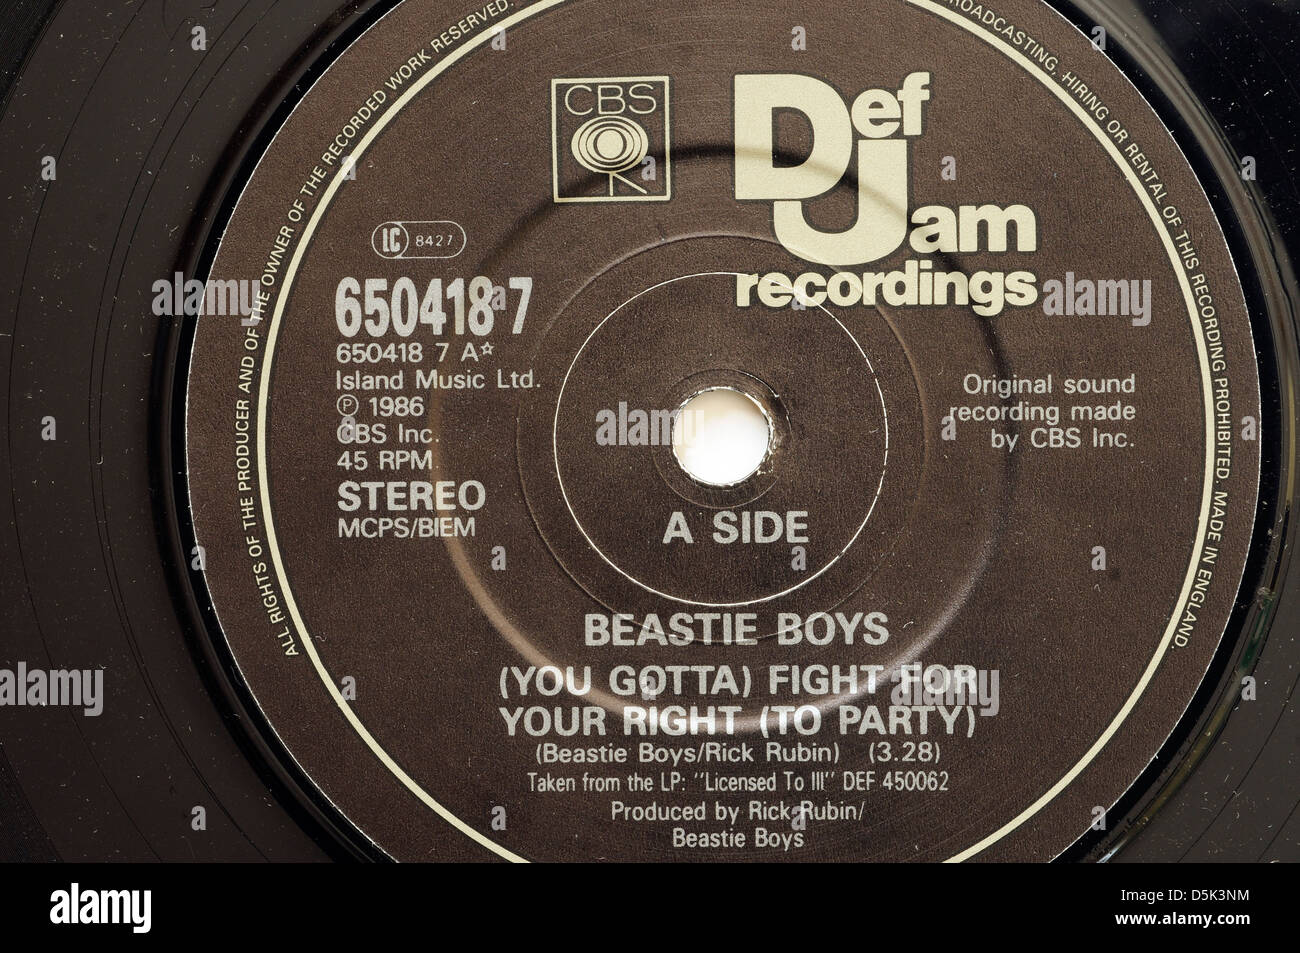 Beastie Boys You Gotta Fight for Your Right To Party 7' single label - Stock Image